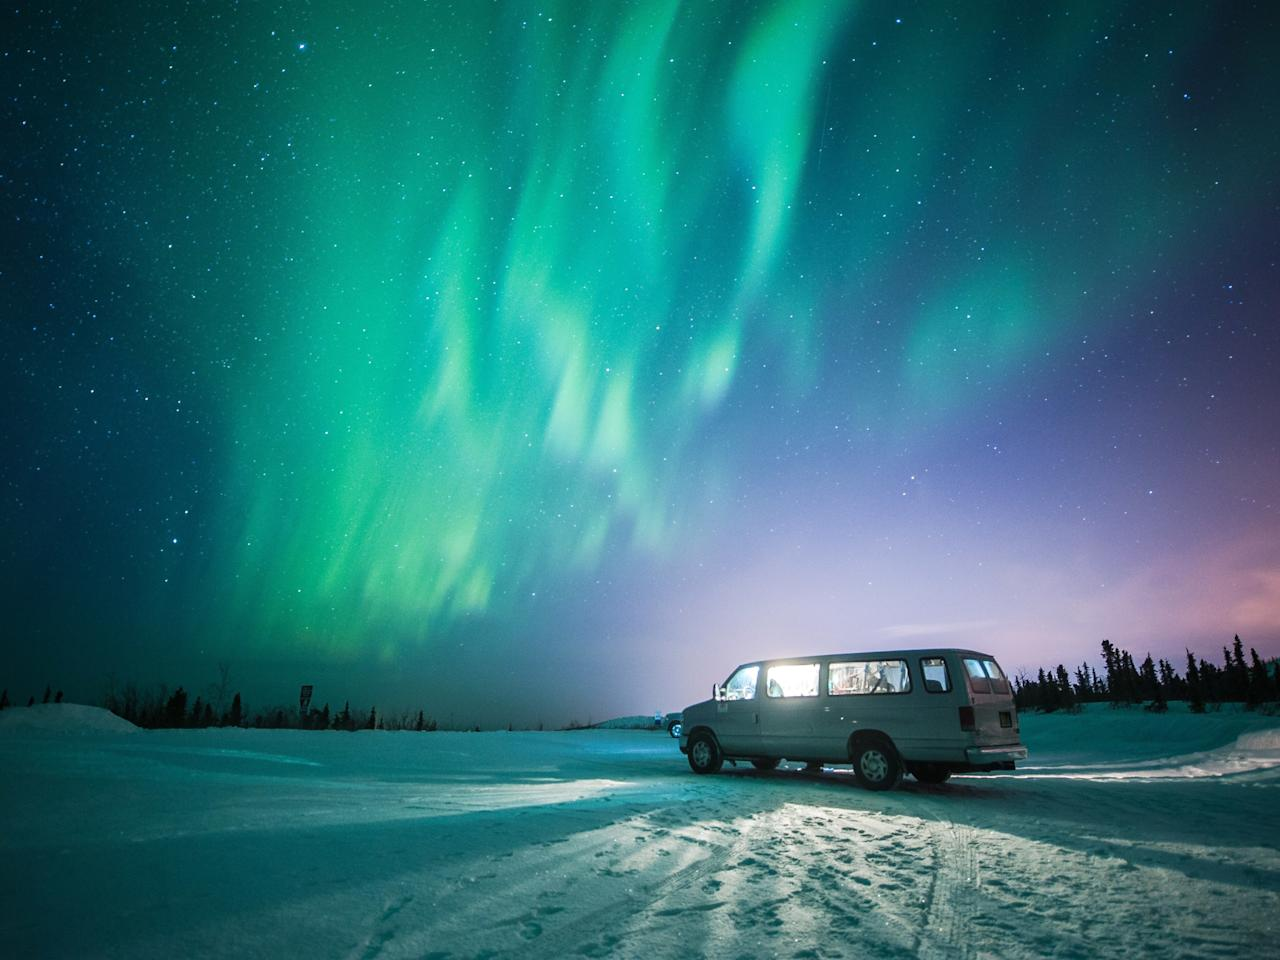 """While summer in Alaska offers lush vegetation and the elusive midnight sun, winter brings out the far north's star attraction: the <a rel=""""nofollow"""" href=""""https://www.cntraveler.com/stories/2011-11-07/best-places-to-stay-to-see-the-northern-lights?mbid=synd_yahoo_rss"""">Northern Lights</a>. Fairbanks (the state's second-largest city) is a particularly ideal place to view the phenomenon, with cloud-free nights and a lengthy aurora season (August 21 through April 21). For a truly unique experience, head to <a rel=""""nofollow"""" href=""""https://www.cntraveler.com/galleries/2014-05-26/swimming-spots-united-states-summer-getaway-photos?mbid=synd_yahoo_rss"""">Chena Hot Springs Resort</a>—one of several hot springs resorts just outside of the city—to watch the light show from the warmth of a mineral pool."""